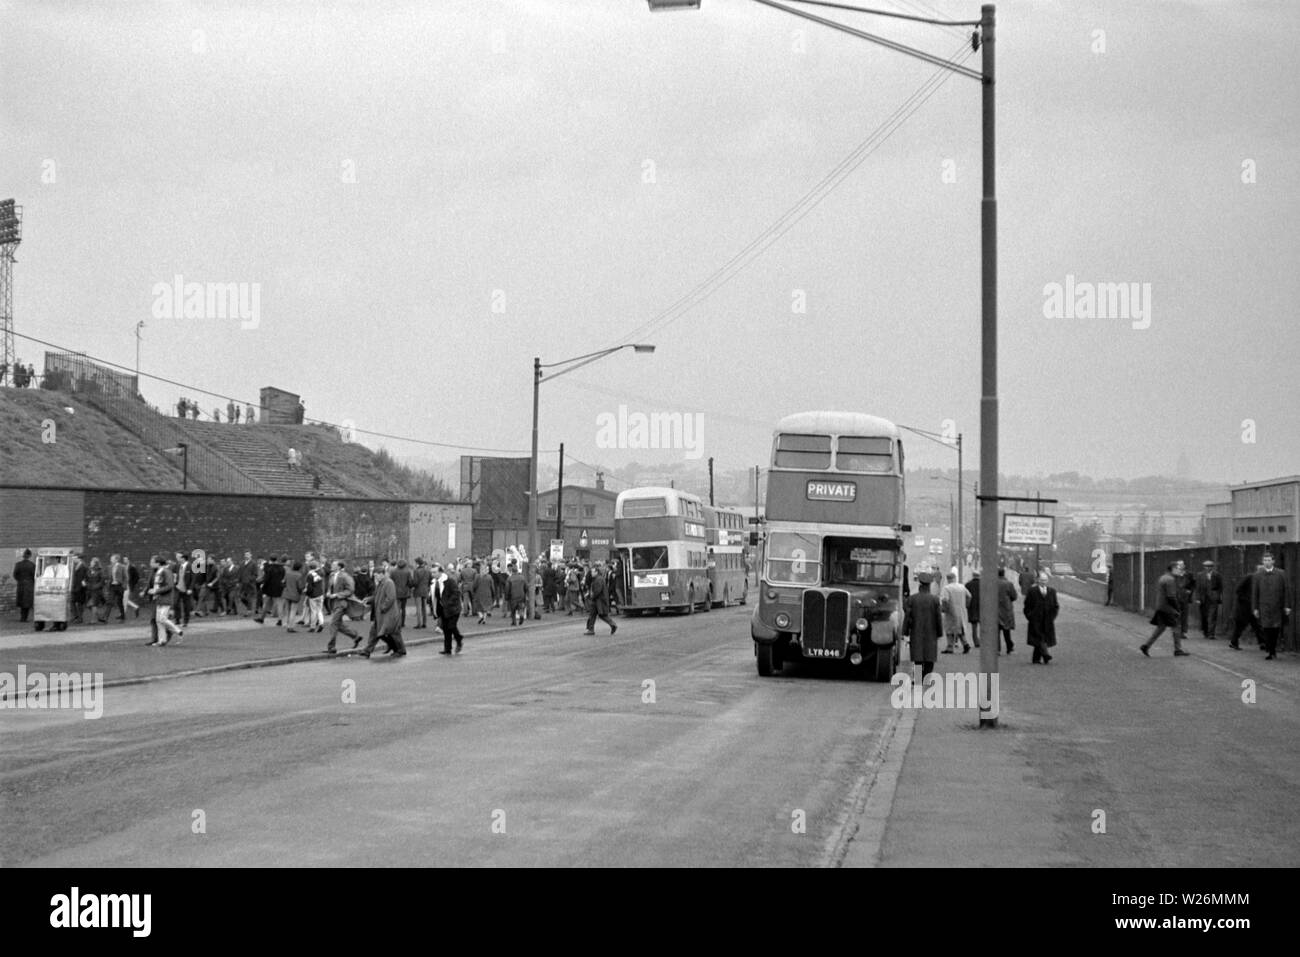 Match Day at Leeds United Football Ground. Probably taken during the 1960s, the image shows the home side fans getting of the busses to see their team in action. The main bus in the image is a Waymann Bodied AEC Regent III that would have been new in 1952 - Stock Image